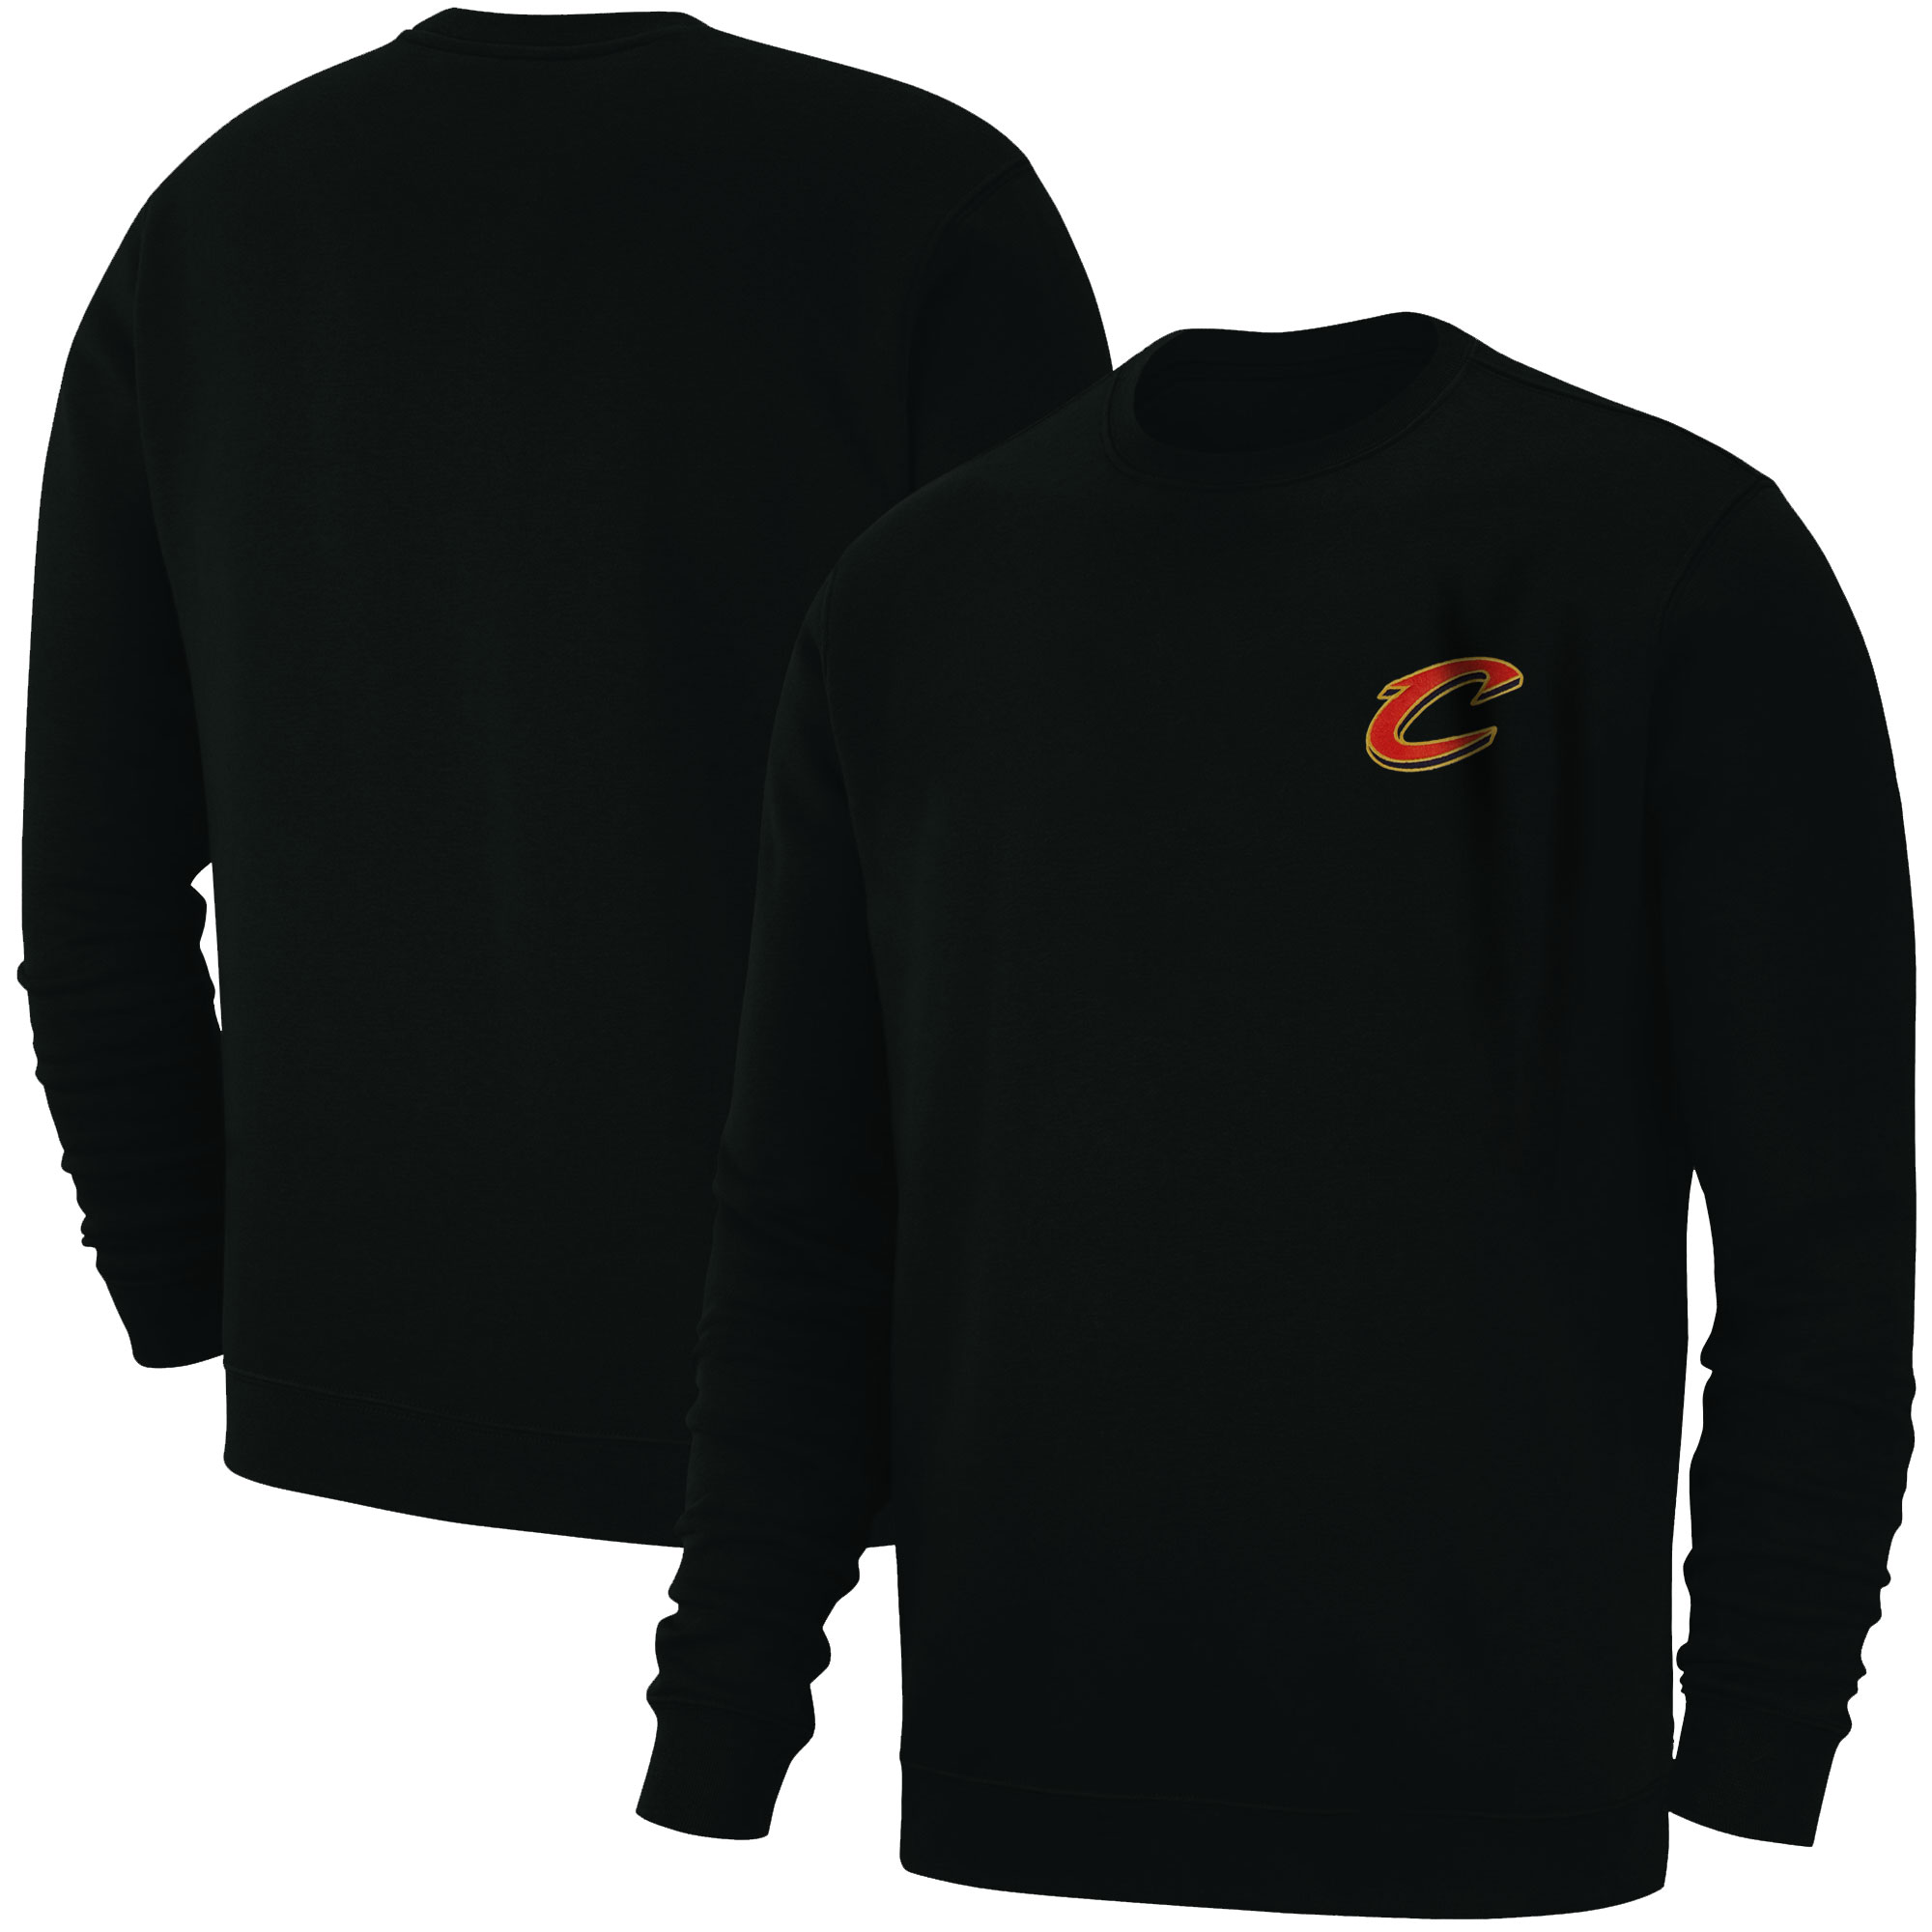 Cleveland Cavaliers Basic (Örme)  (BSC-RED-EMBR-CLEVELAND)